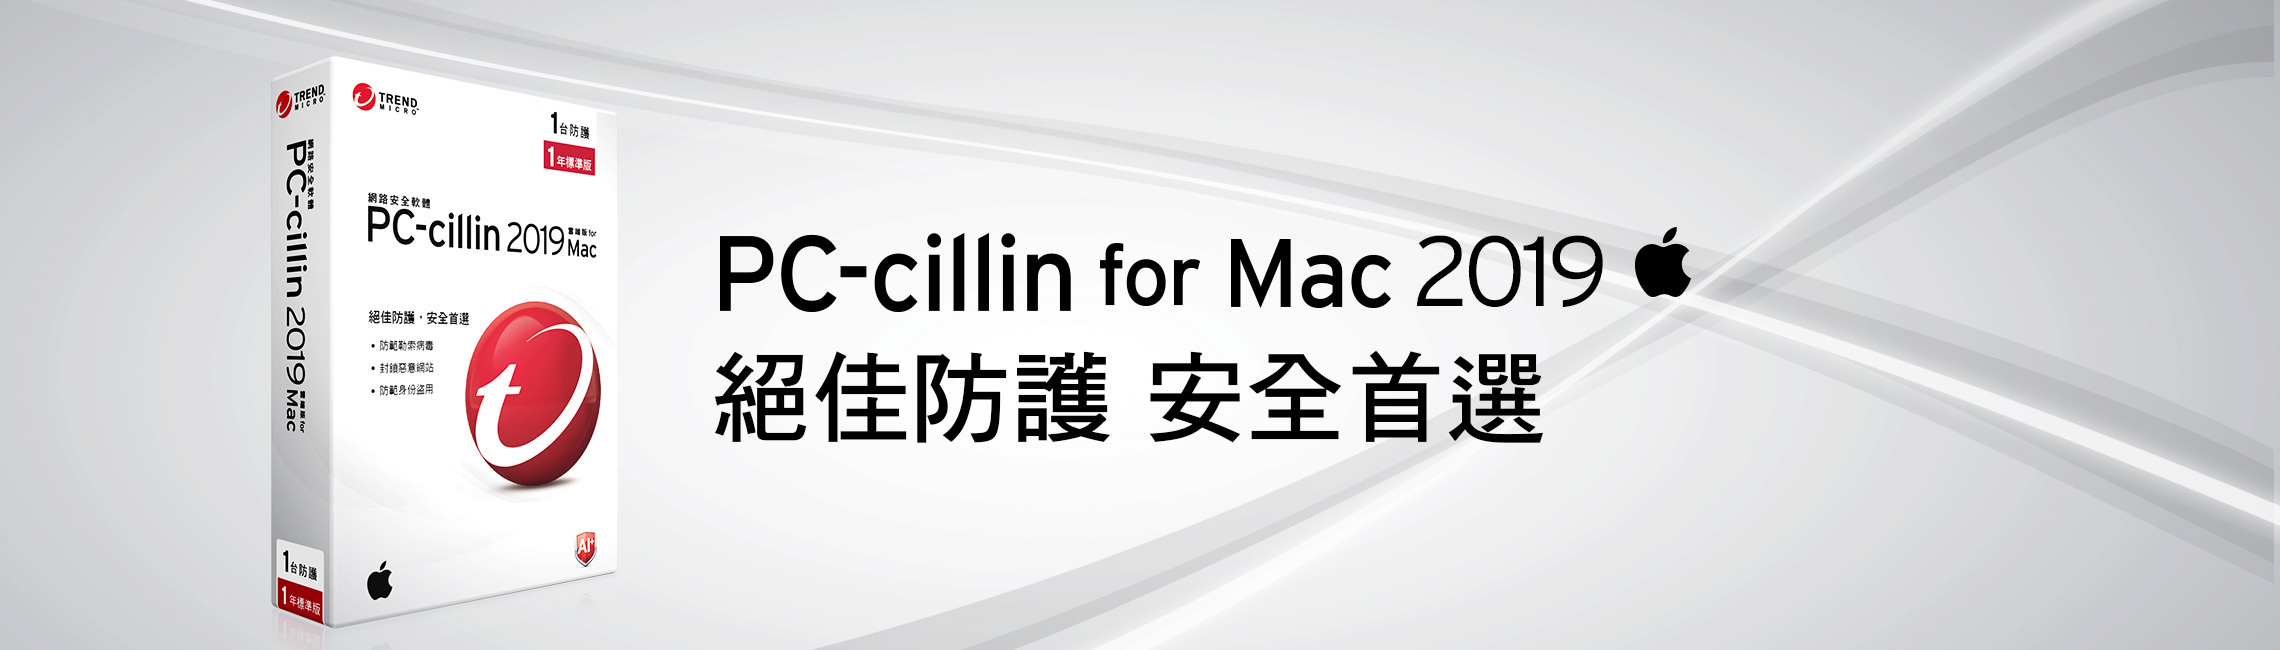 PC-cillin 2018 for mac